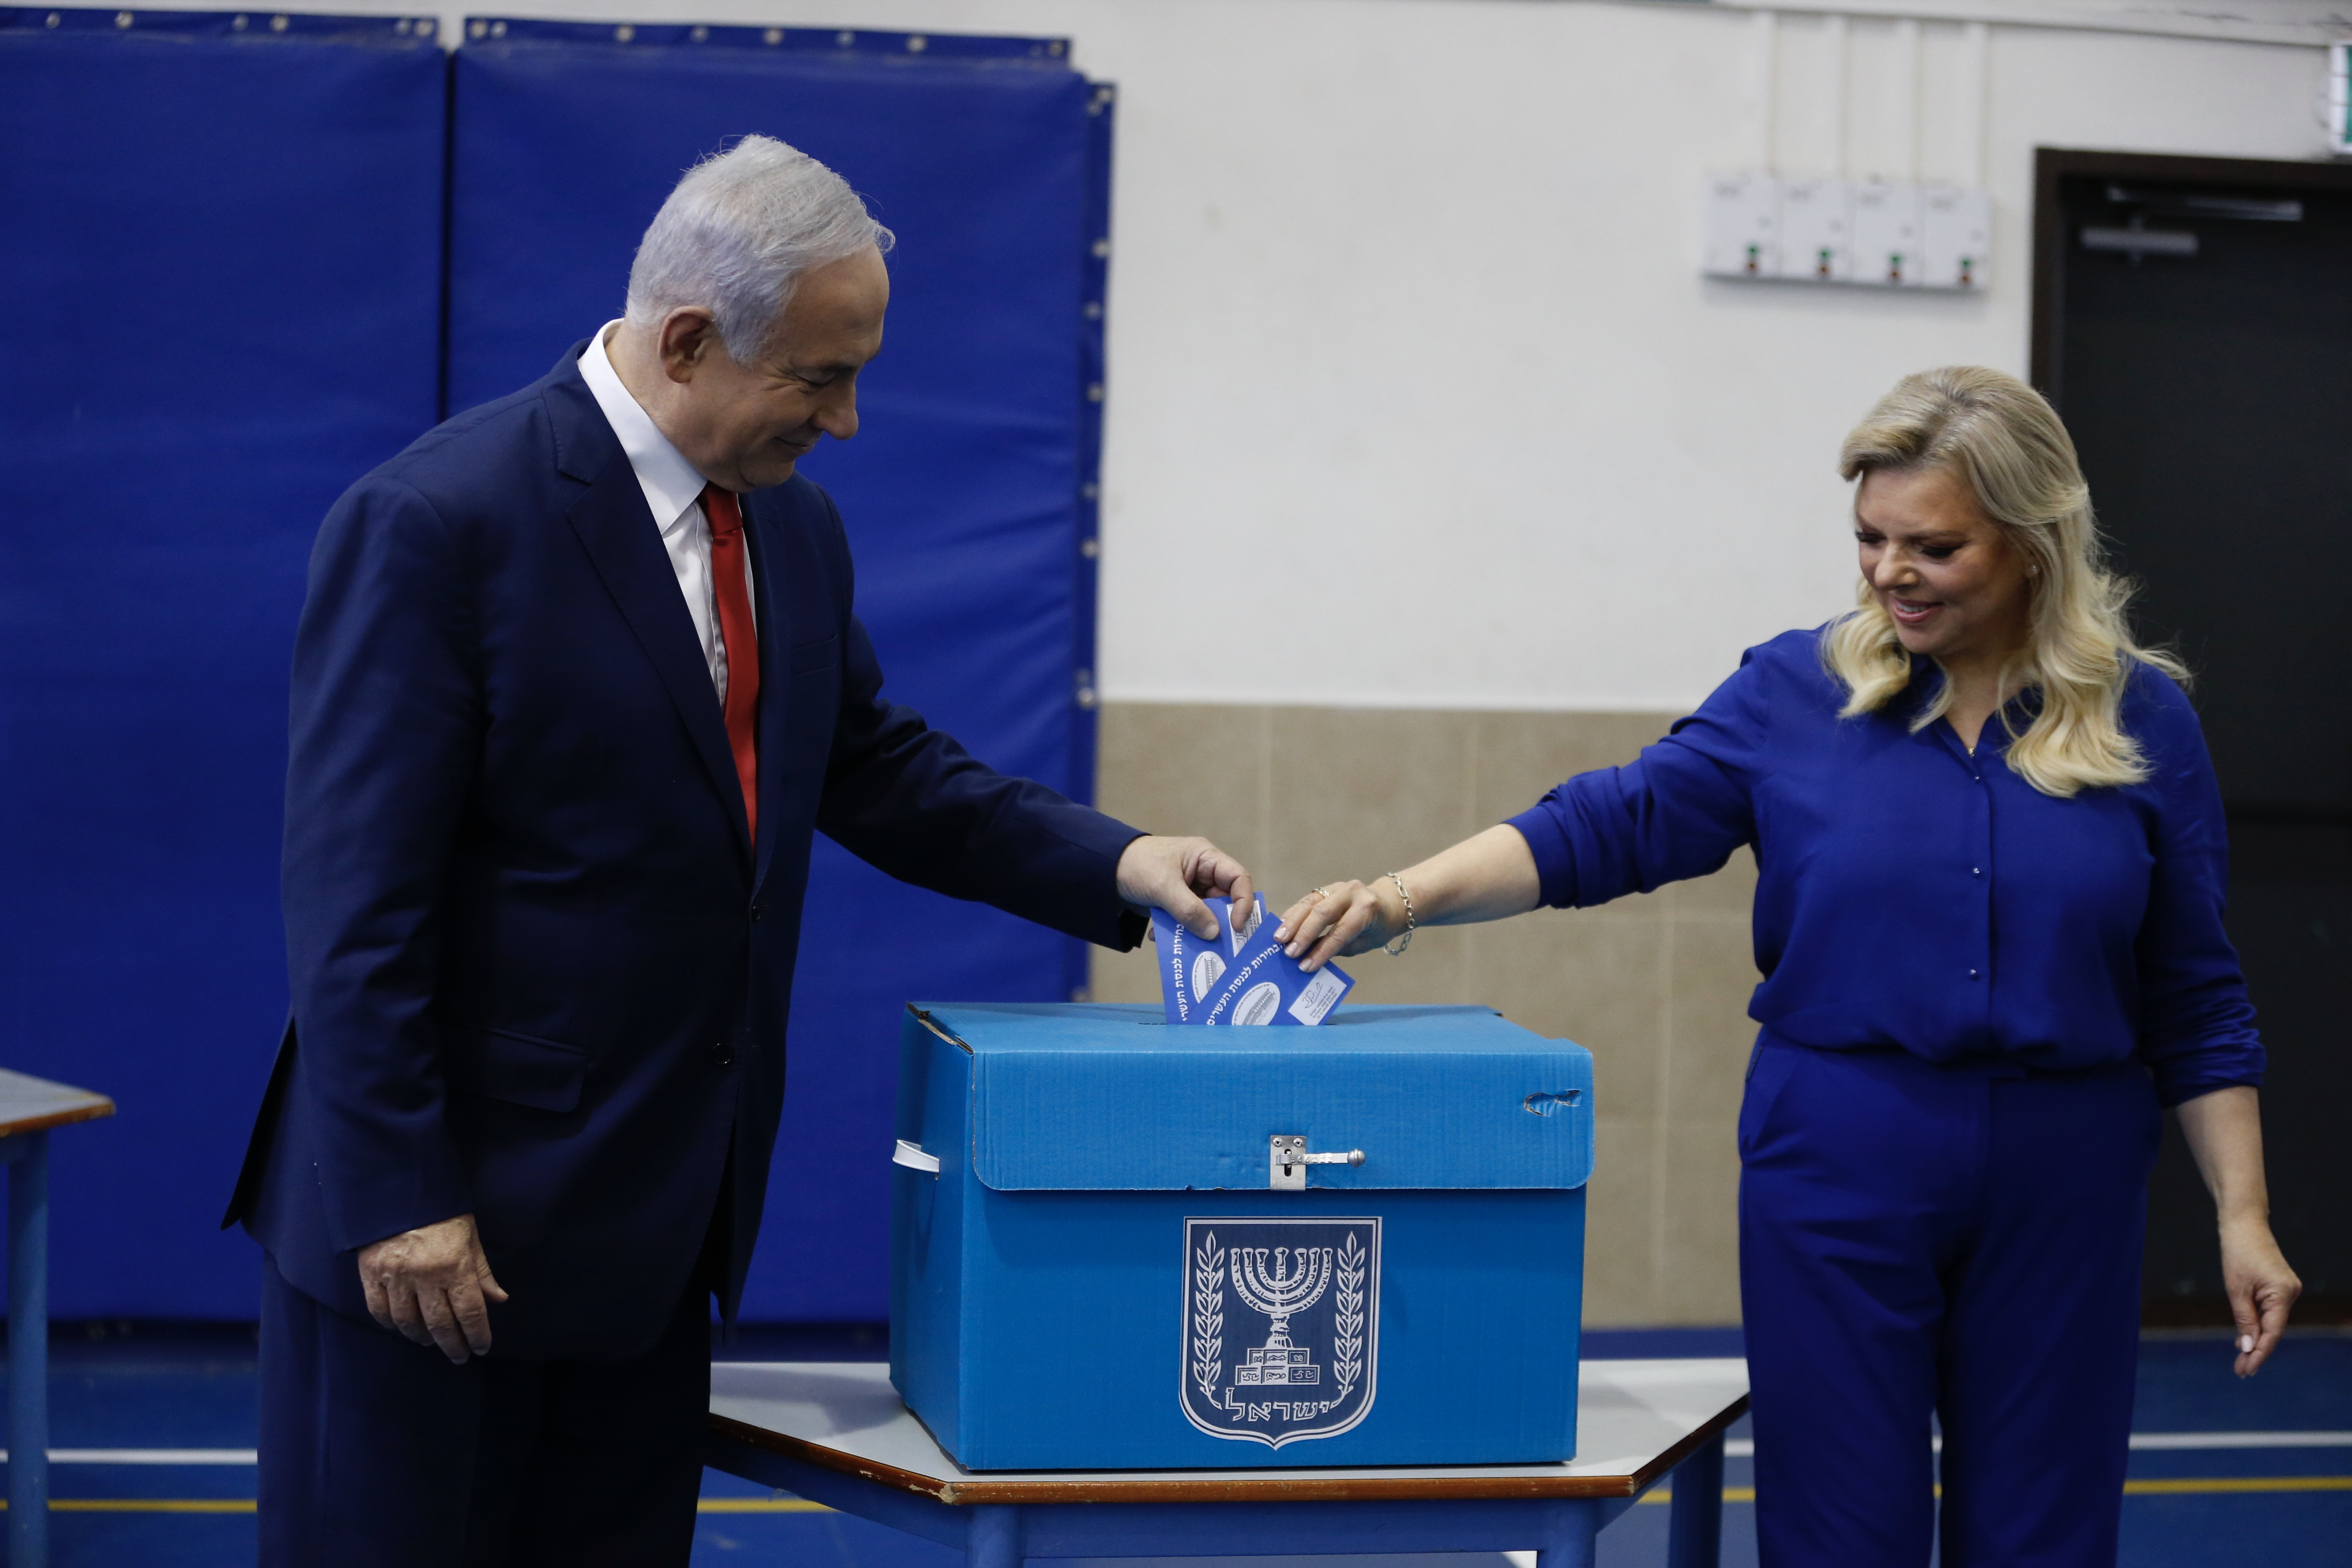 Israeli Prime Minister Benjamin Netanyahu and his wife Sara cast their votes during Israel's parliamentary elections in Jerusalem, on April 9, 2019. (ARIEL SCHALIT/AFP/Getty Images)